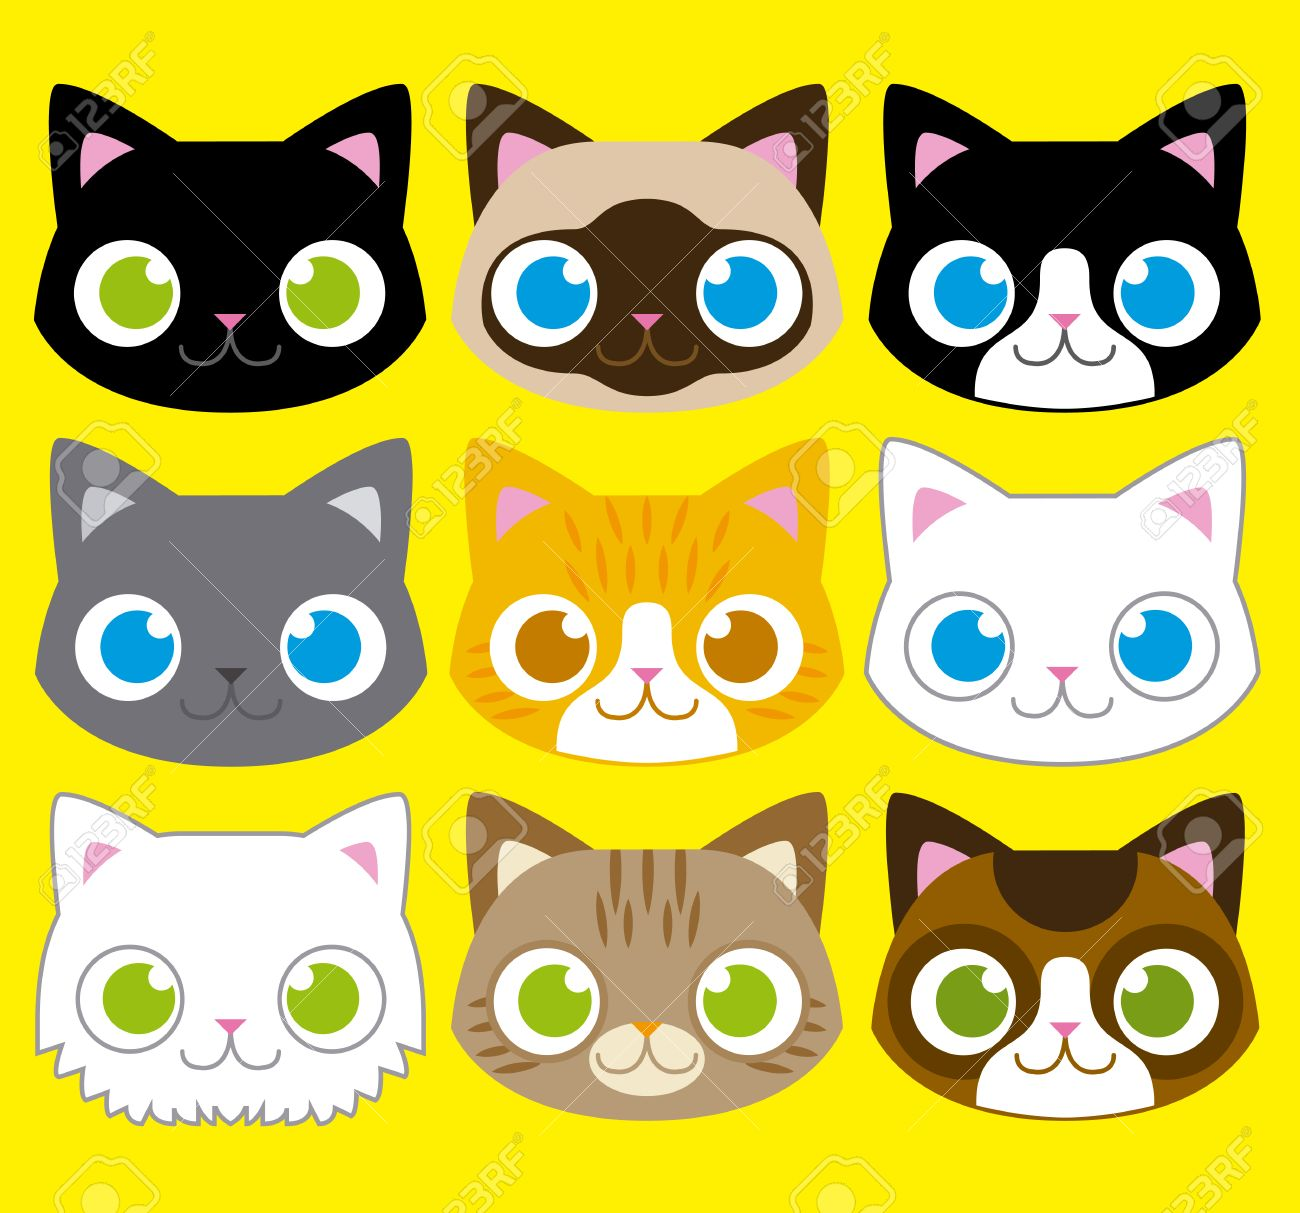 Vector Set Of Different Adorable Cartoon Cats Faces Royalty Free